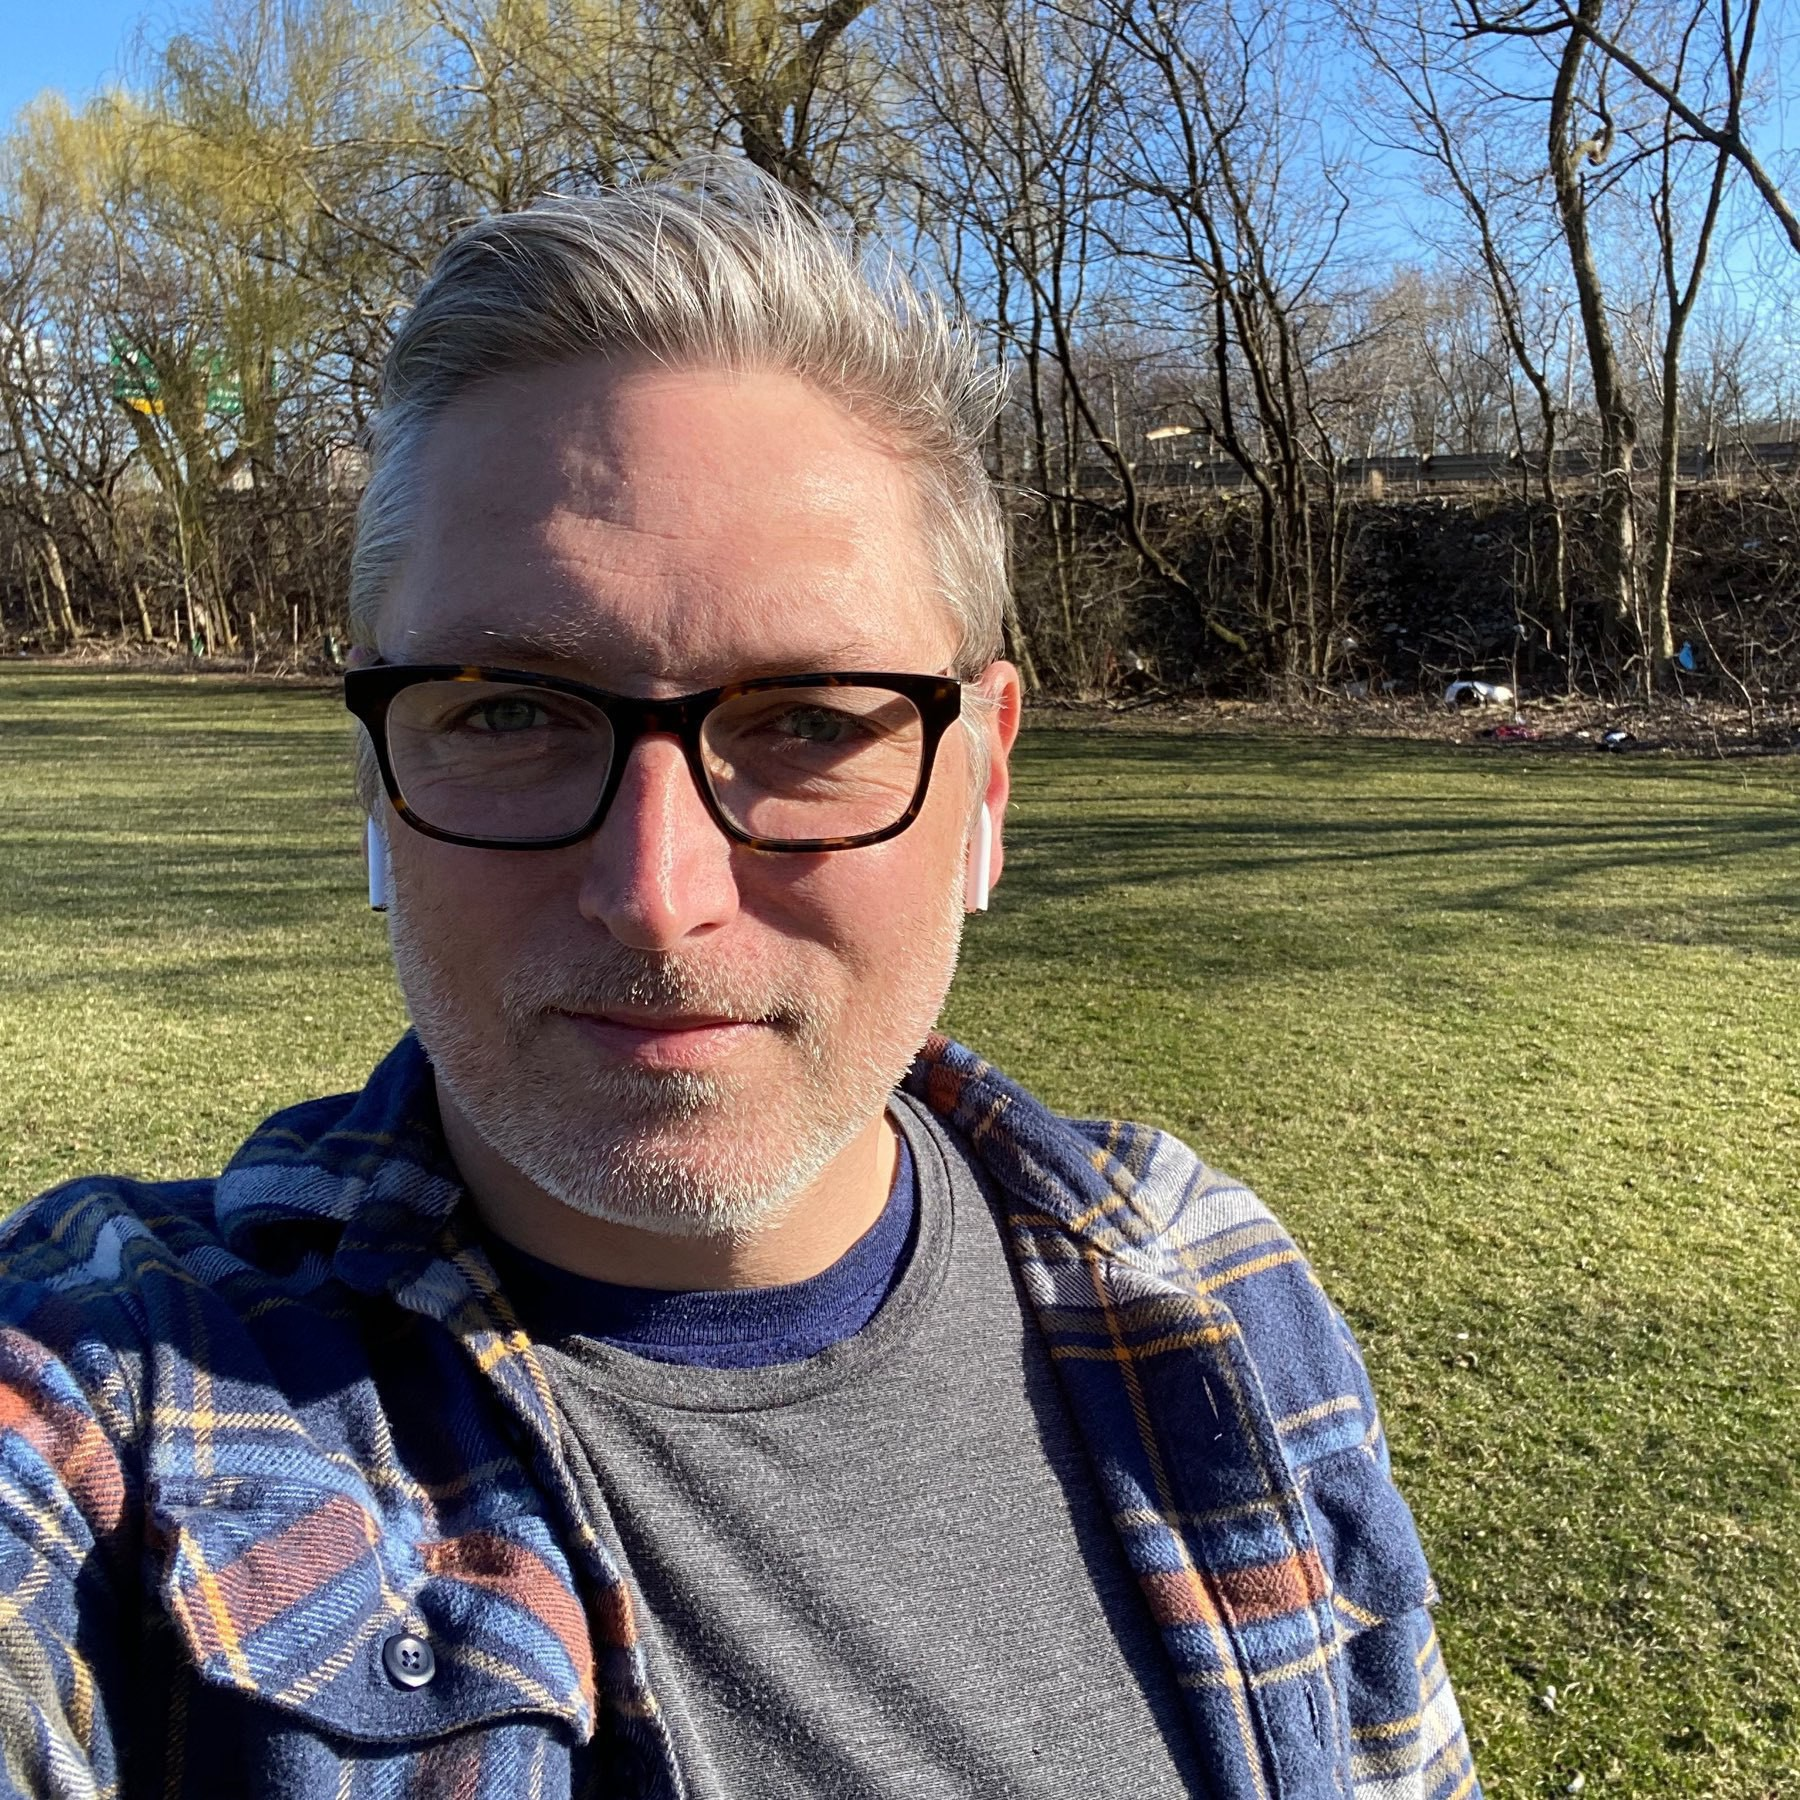 Self portrait against backdrop of green grass and trees.